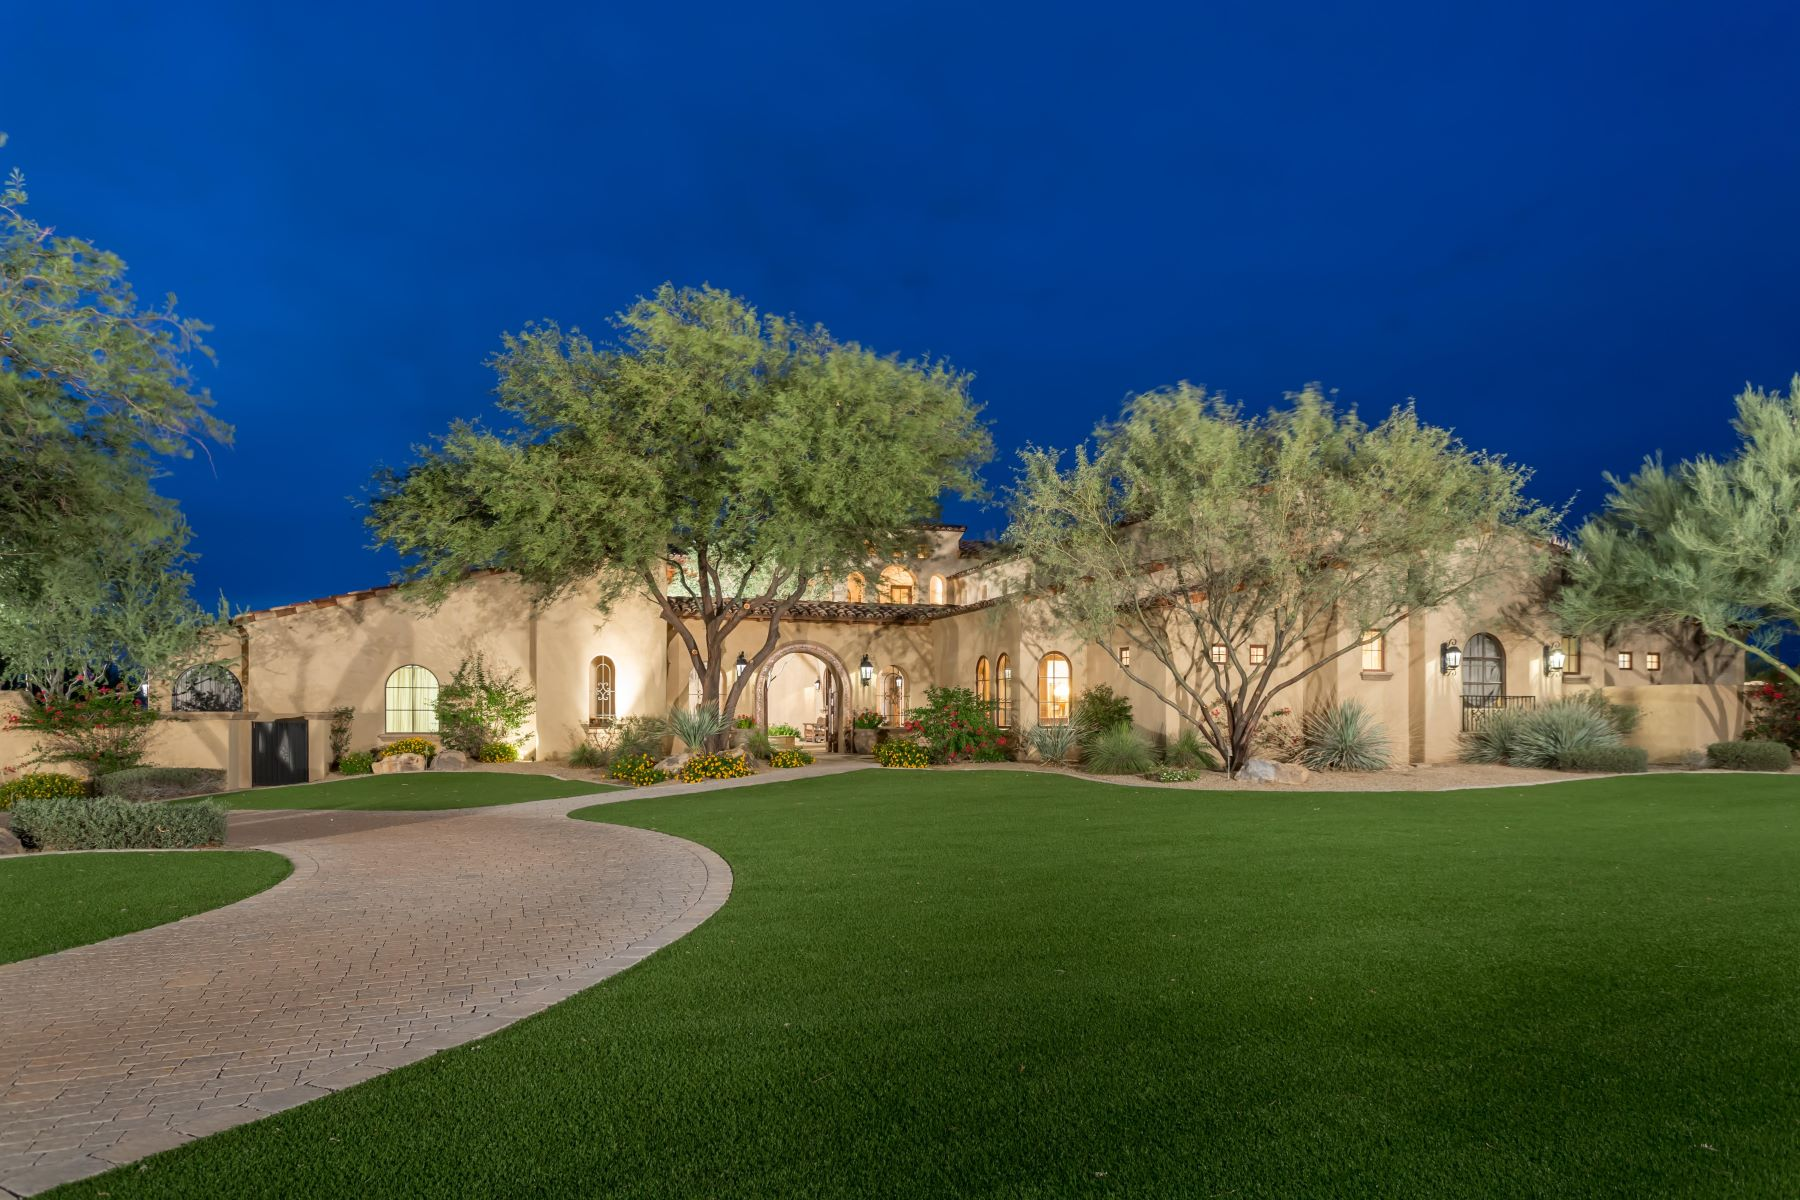 獨棟家庭住宅 為 出售 在 Exclusive Estate Living Surrounded by sprawling mountains 24546 N 91st St Scottsdale, 亞利桑那州, 85255 美國